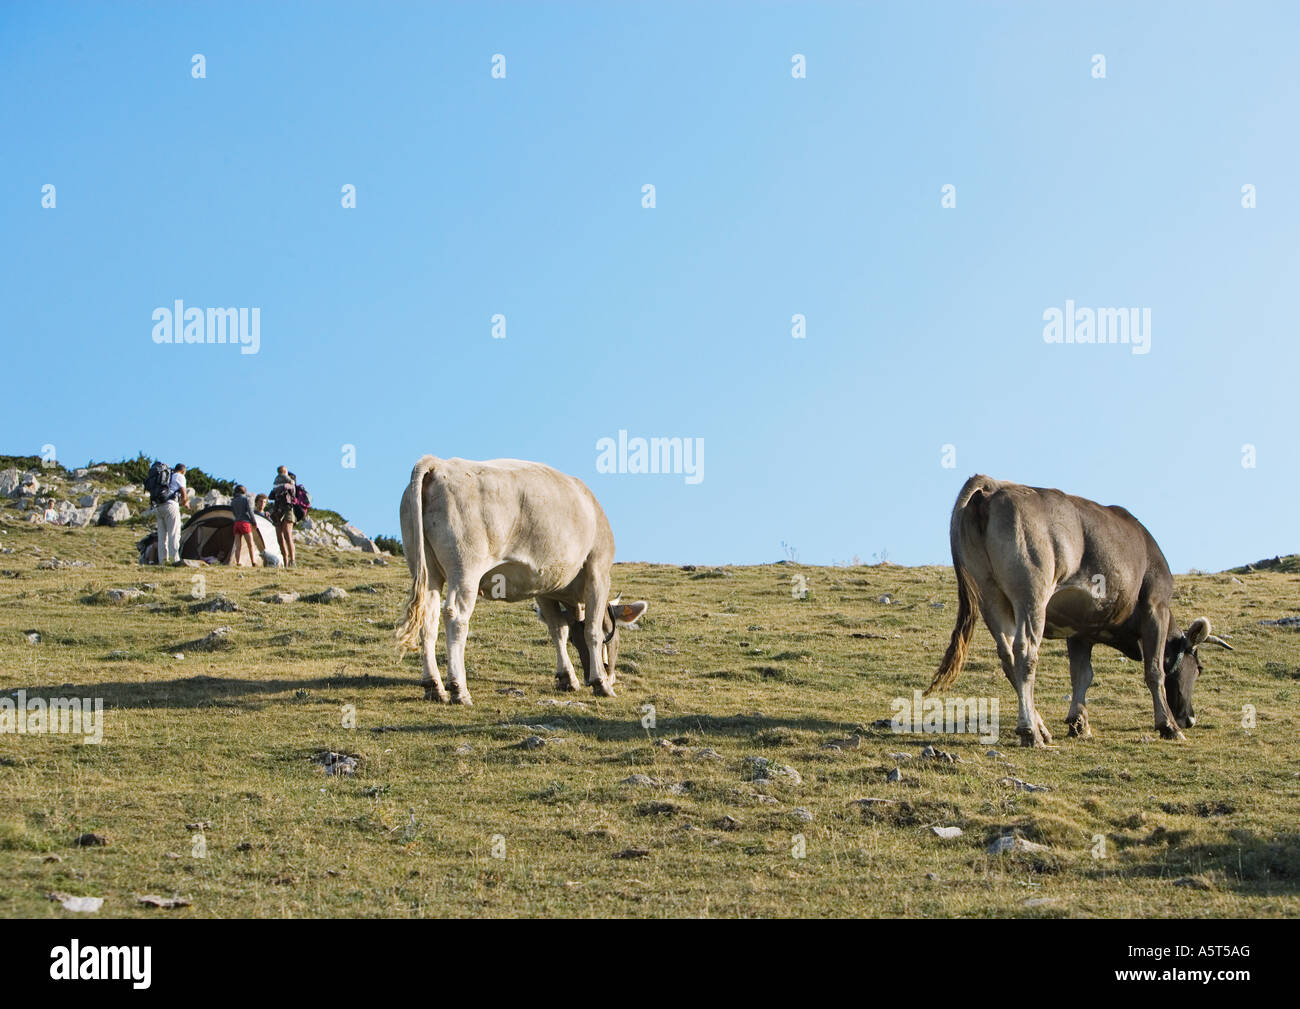 Cows grazing, campers in background - Stock Image